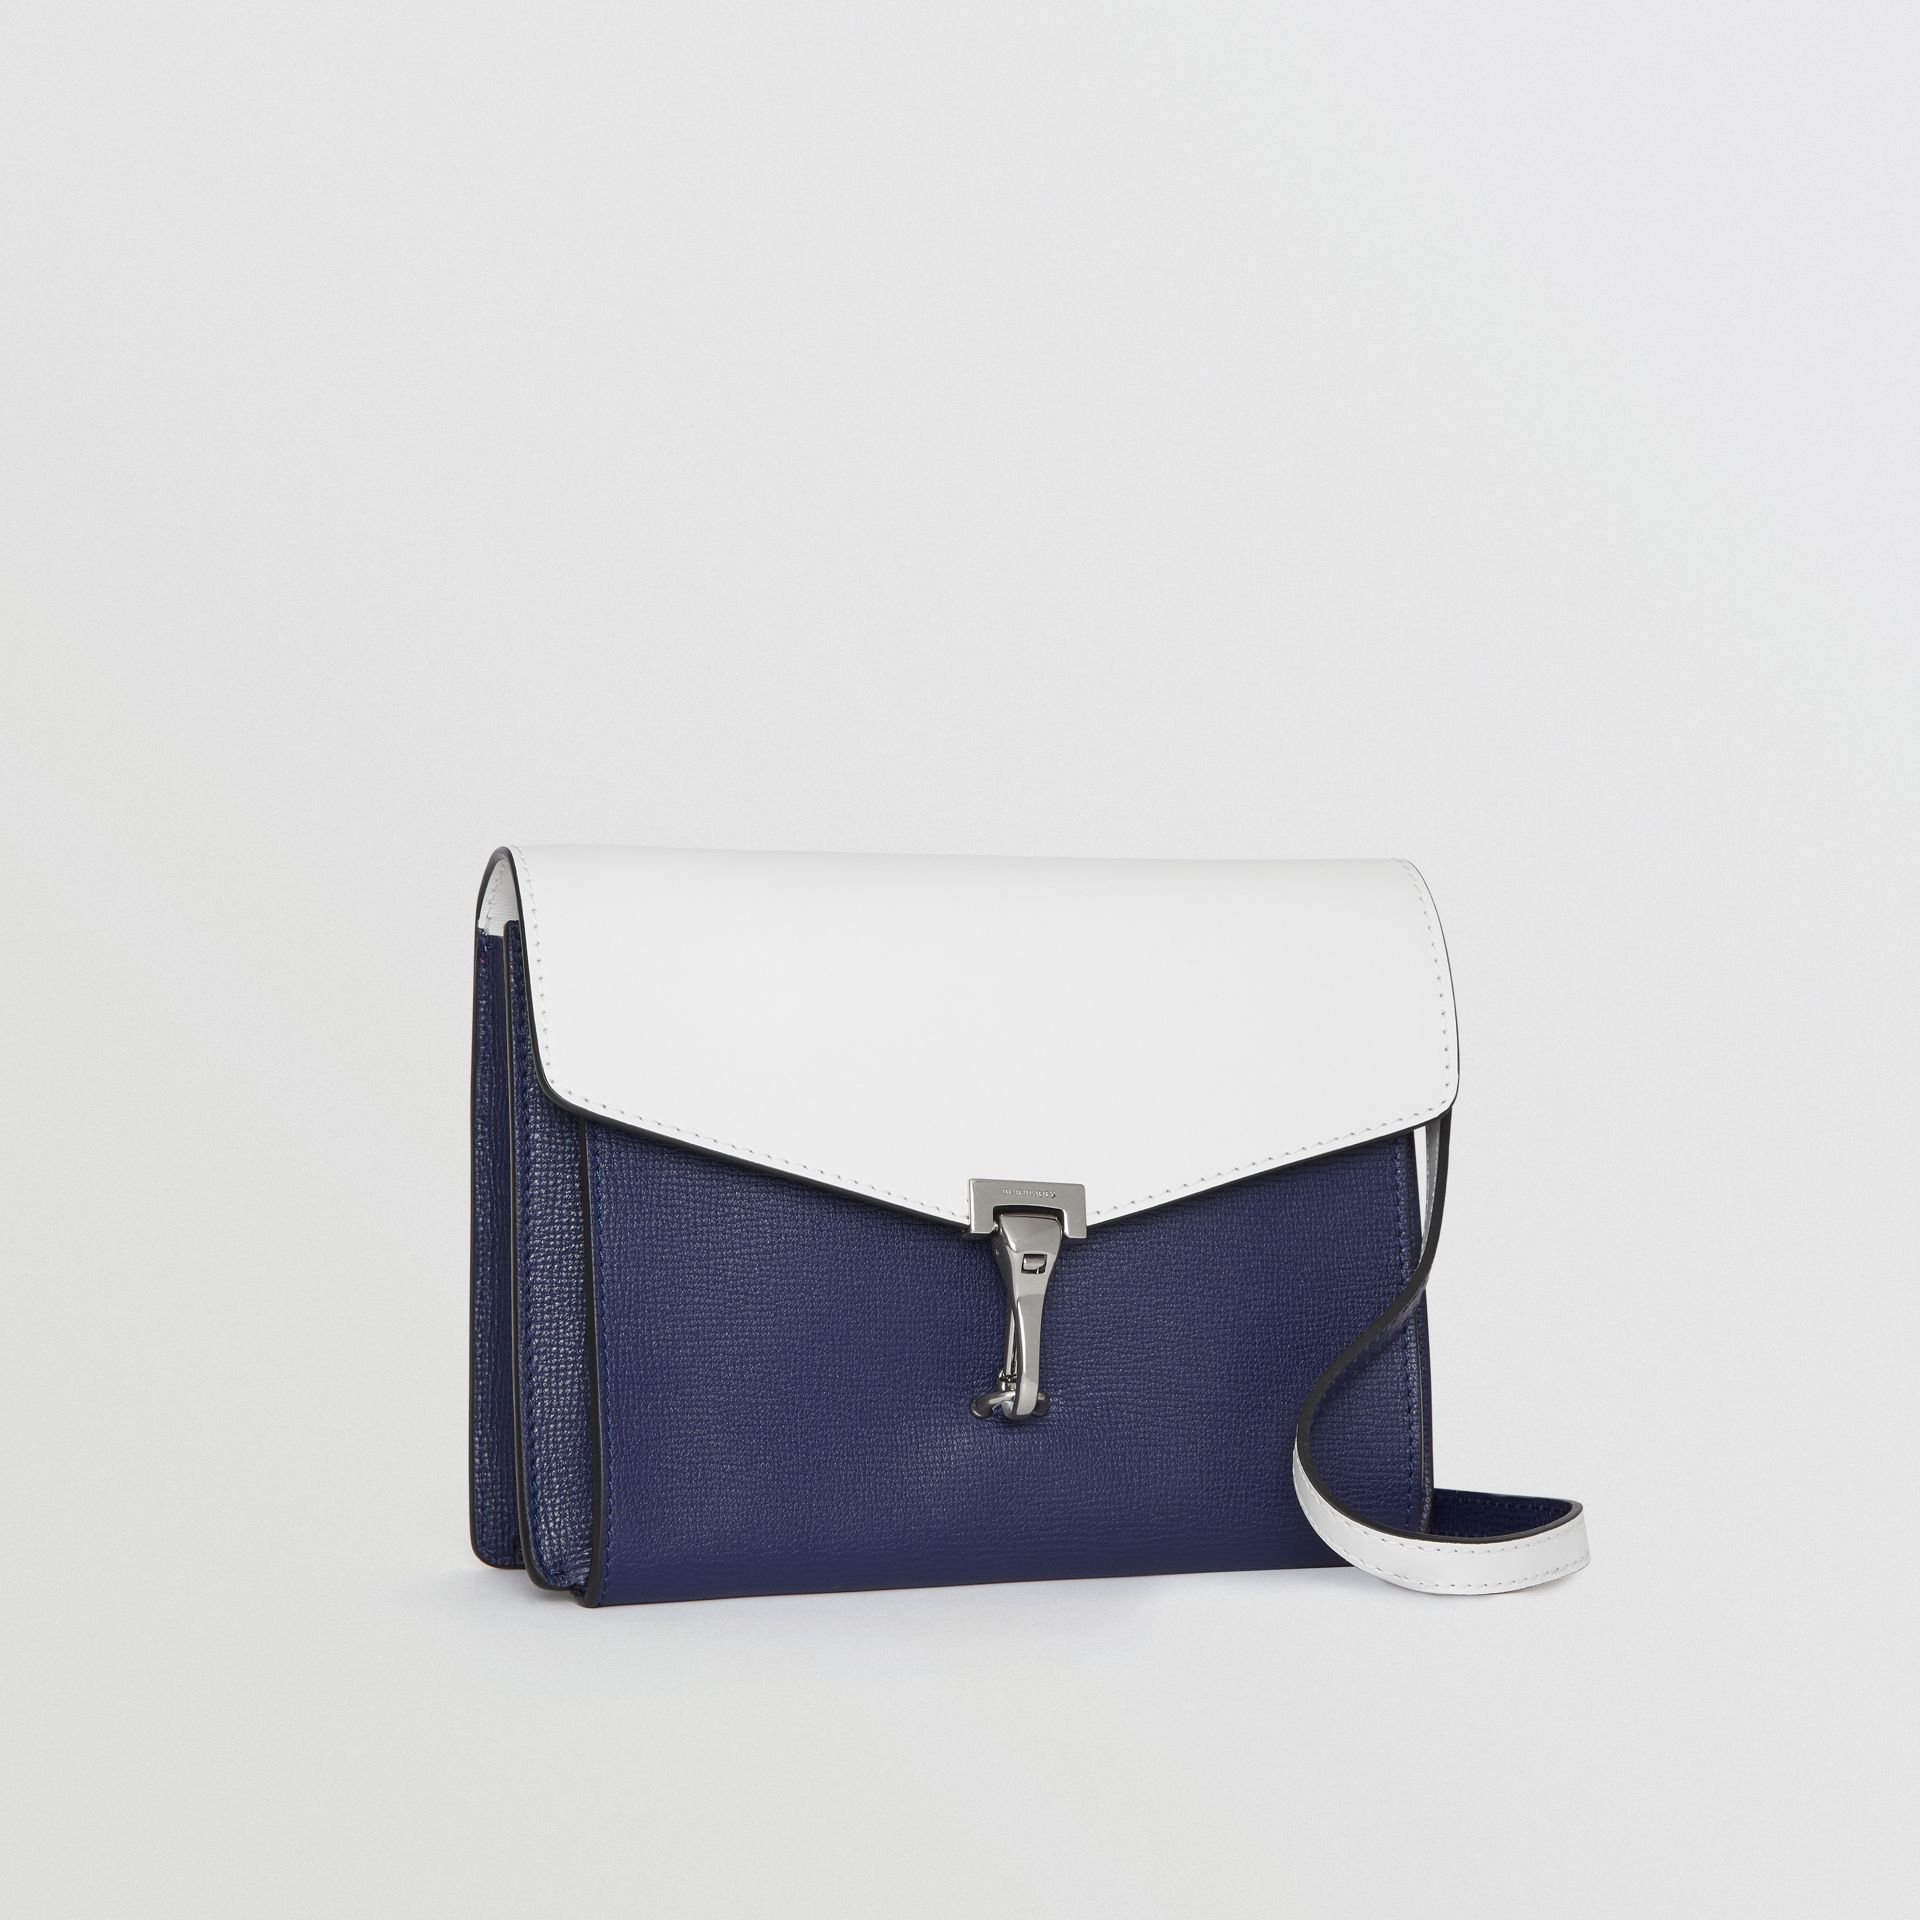 Two-tone Leather Crossbody Bag in Regency Blue/chalk White - Women | Burberry Canada - gallery image 6